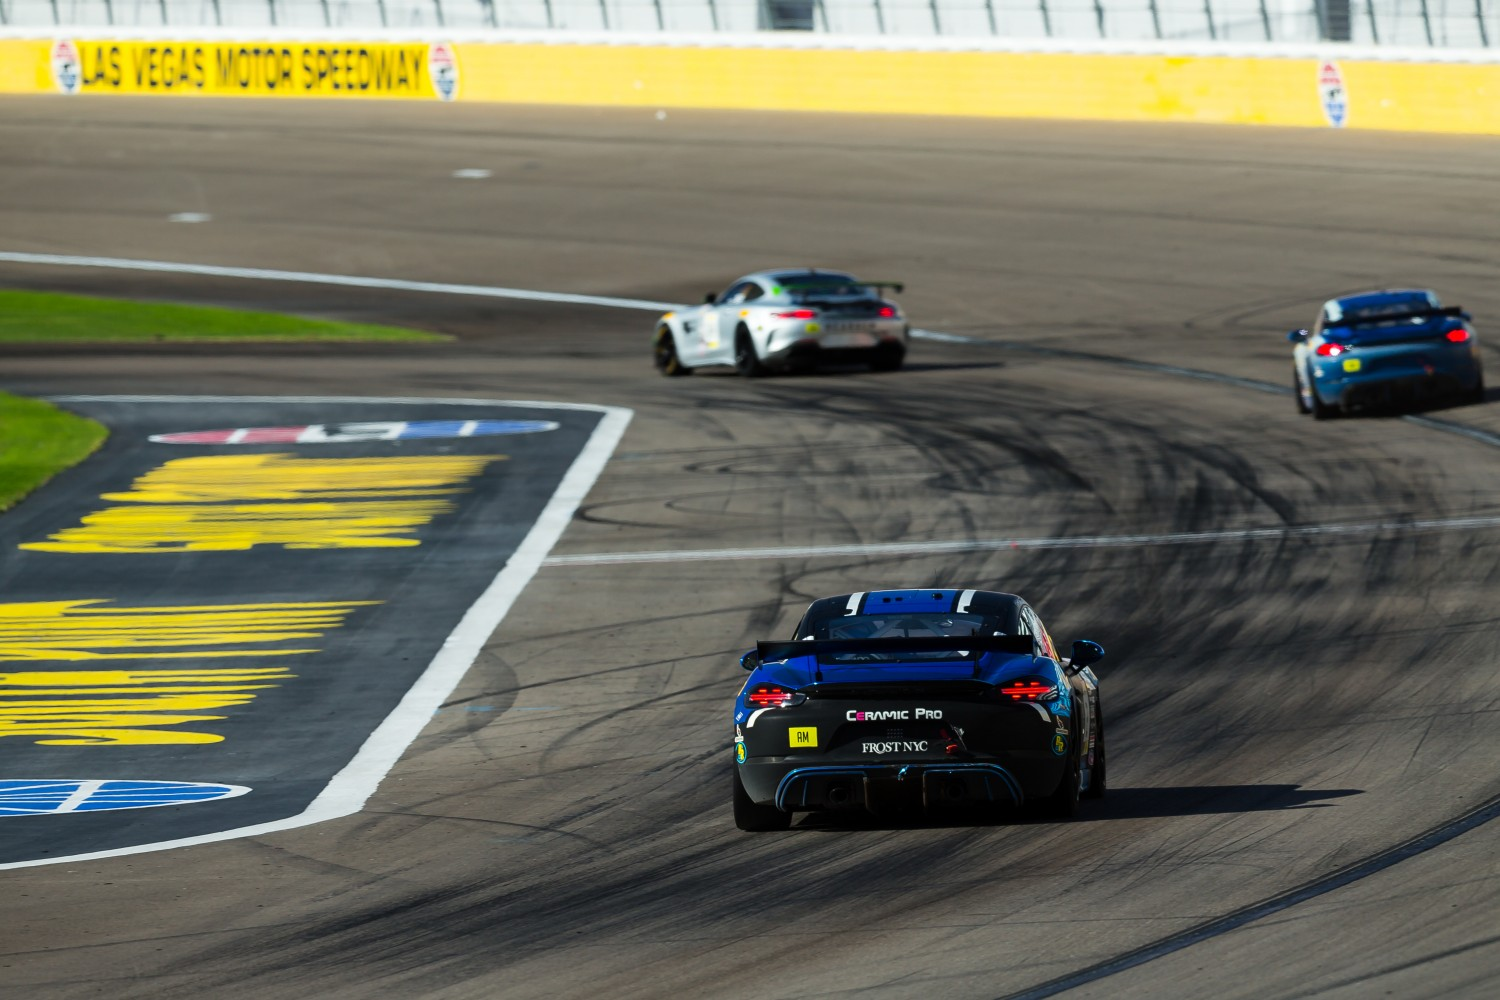 #2 Porsche 718 Cayman CS MR of Jason Bell  with GMG Racing  2019 Blancpain GT World Challenge America - Las Vegas, Las Vegas NV | Fabian Lagunas/SRO